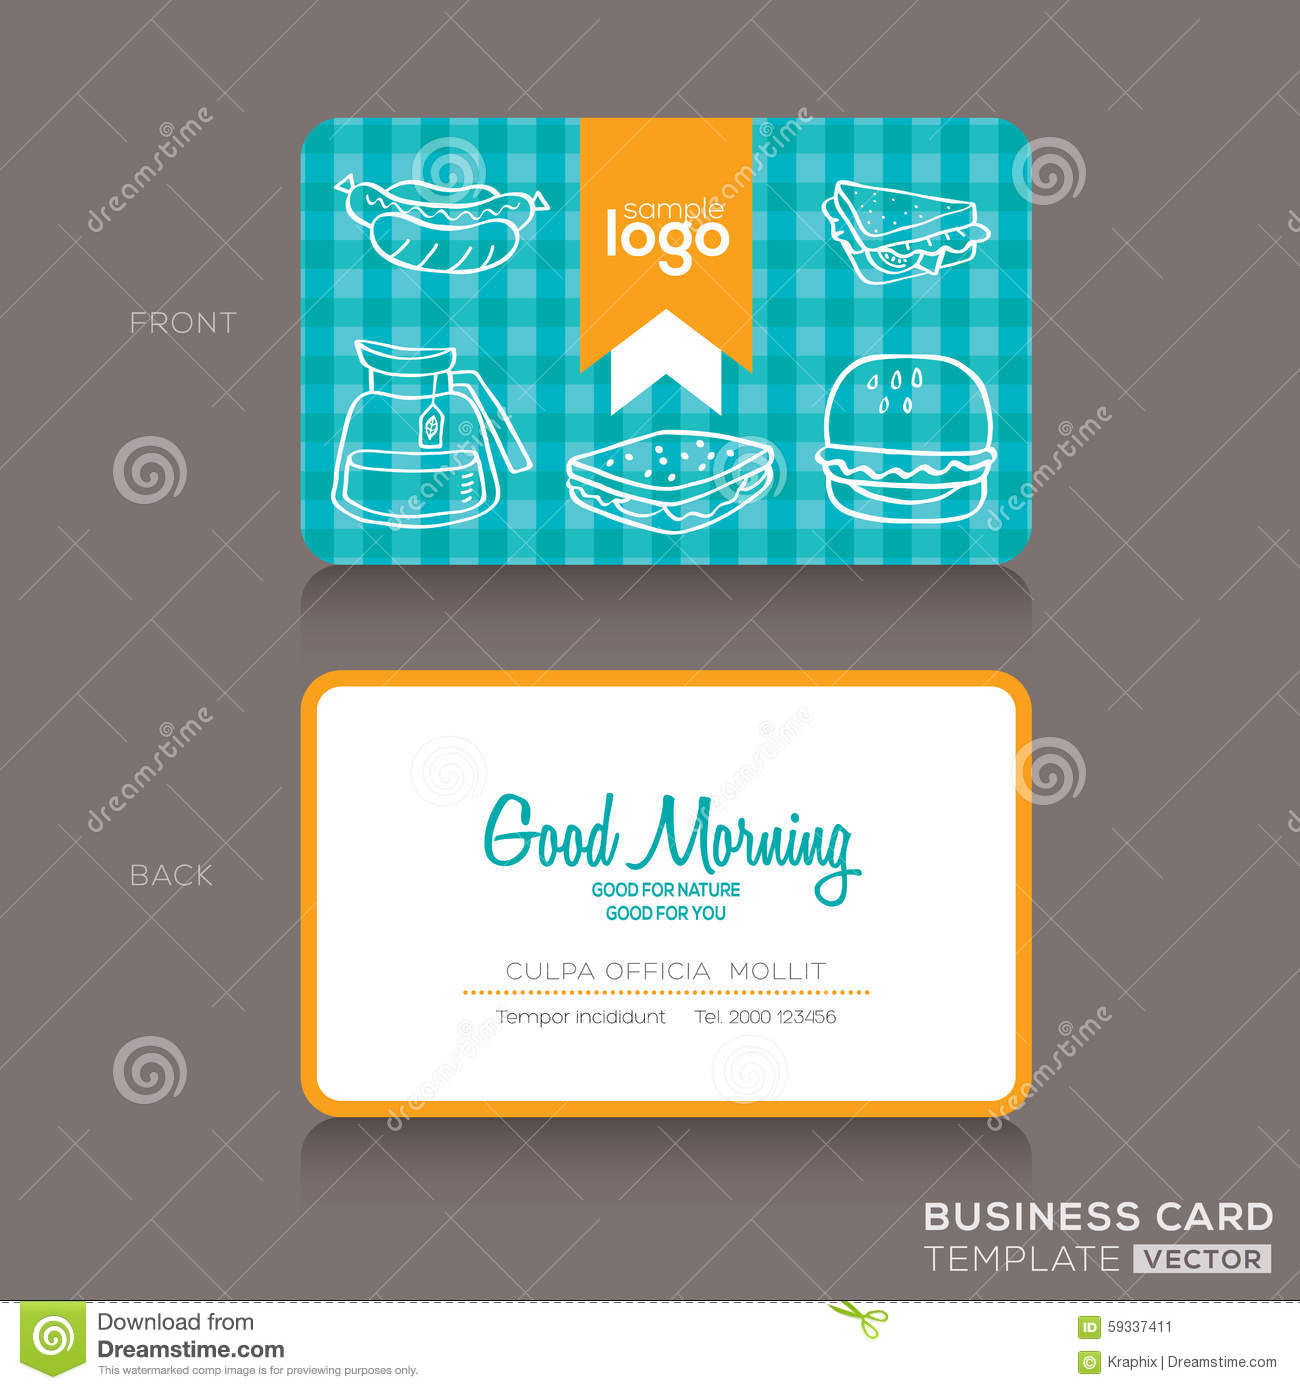 Business Cards Design For Bakery Shop Or Cafe Stock Vector ...